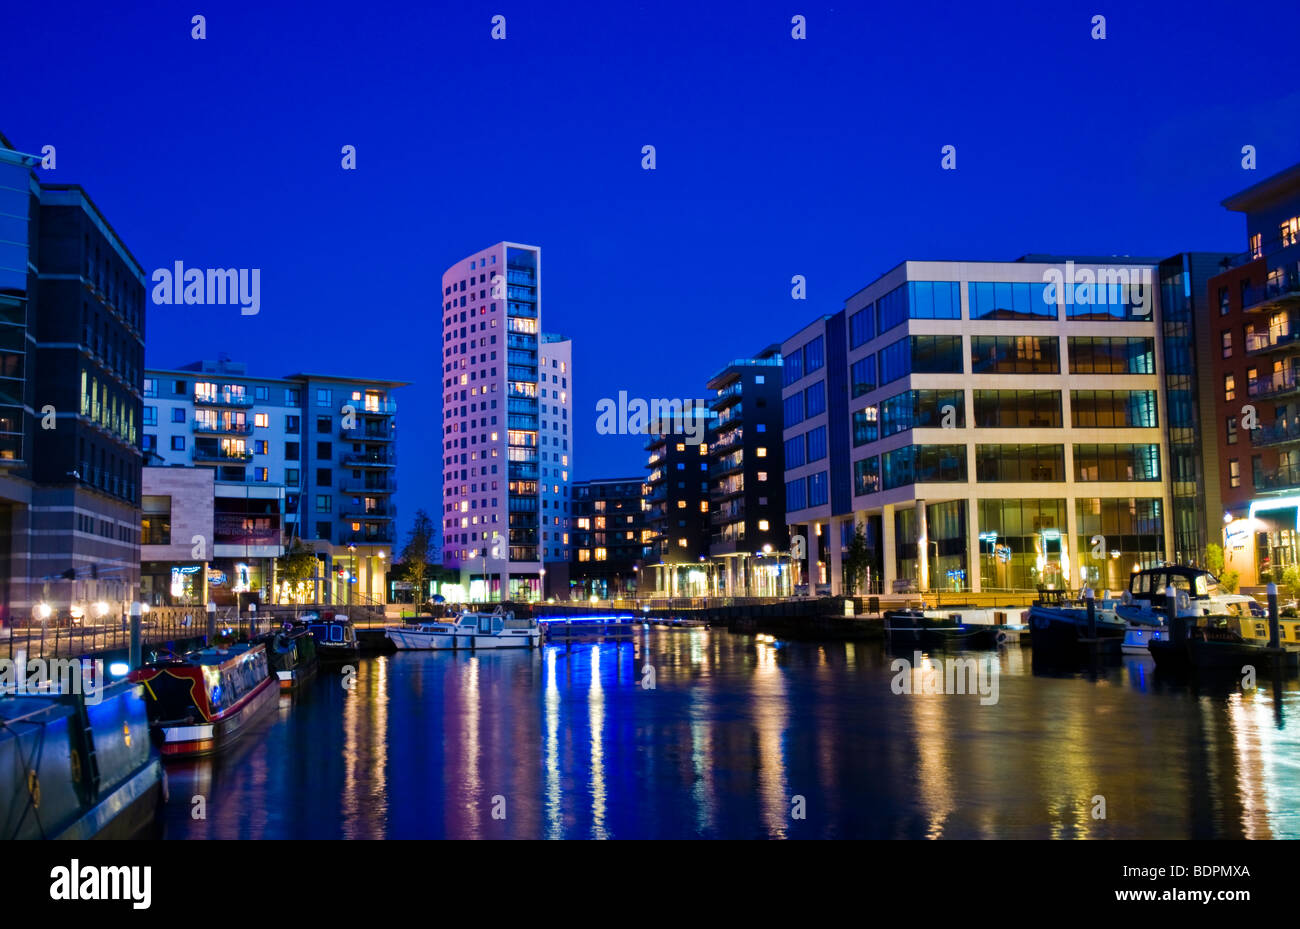 Clarence Dock, Leeds West Yorkshire, at night - Stock Image